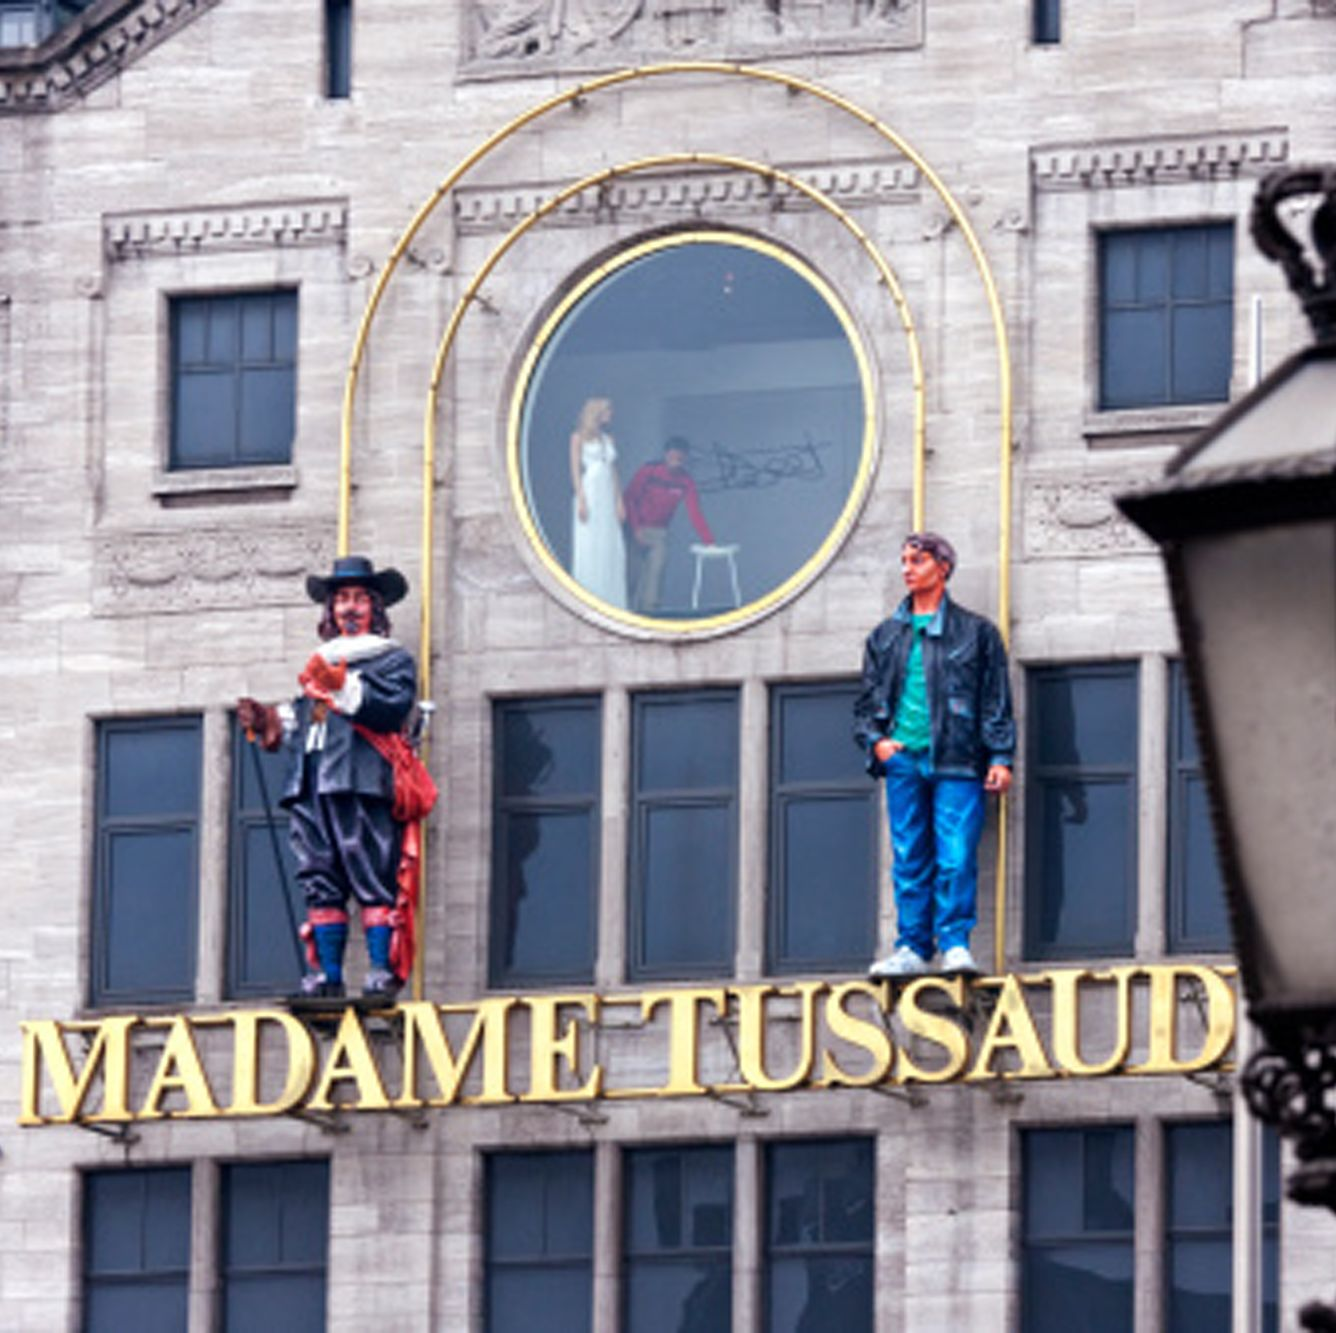 Entry to Madame Tussauds is half-price this week with our deal of the day